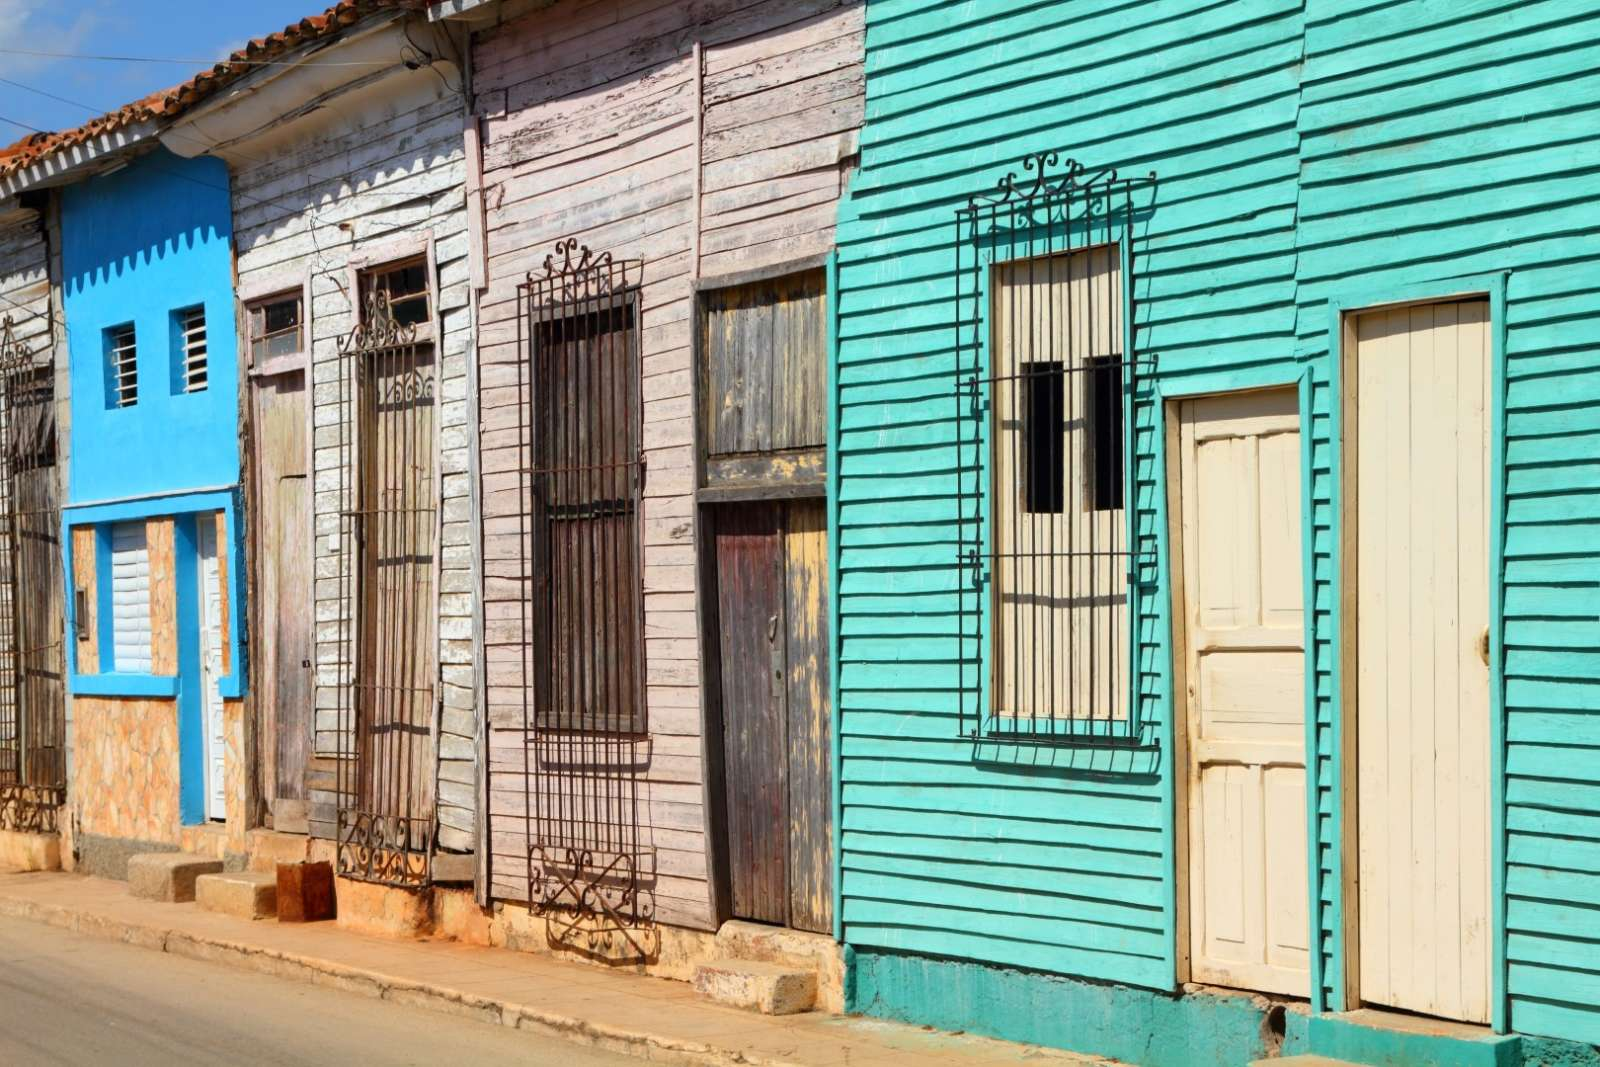 Old wooden buildings in Remedios, Cuba